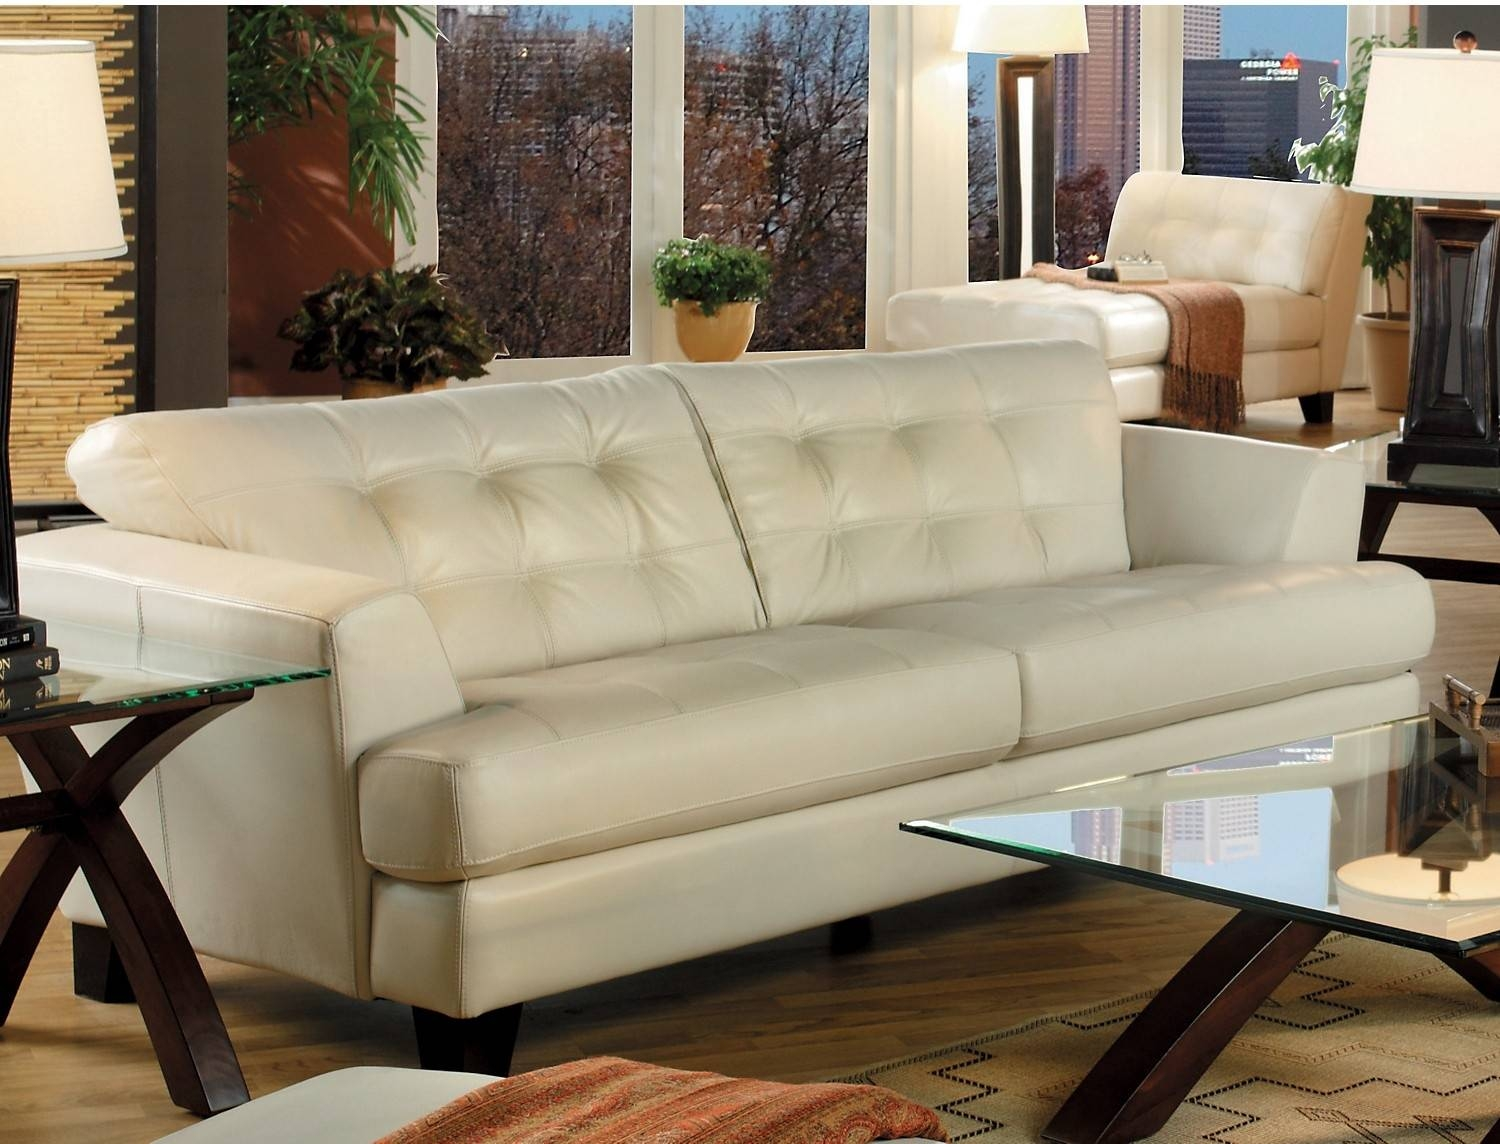 Furniture Cindy Crawford Sectional Sofa For Elegant Living Room Intended For Cindy Crawford Furniture Sectional : cindy crawford furniture sectional - Sectionals, Sofas & Couches